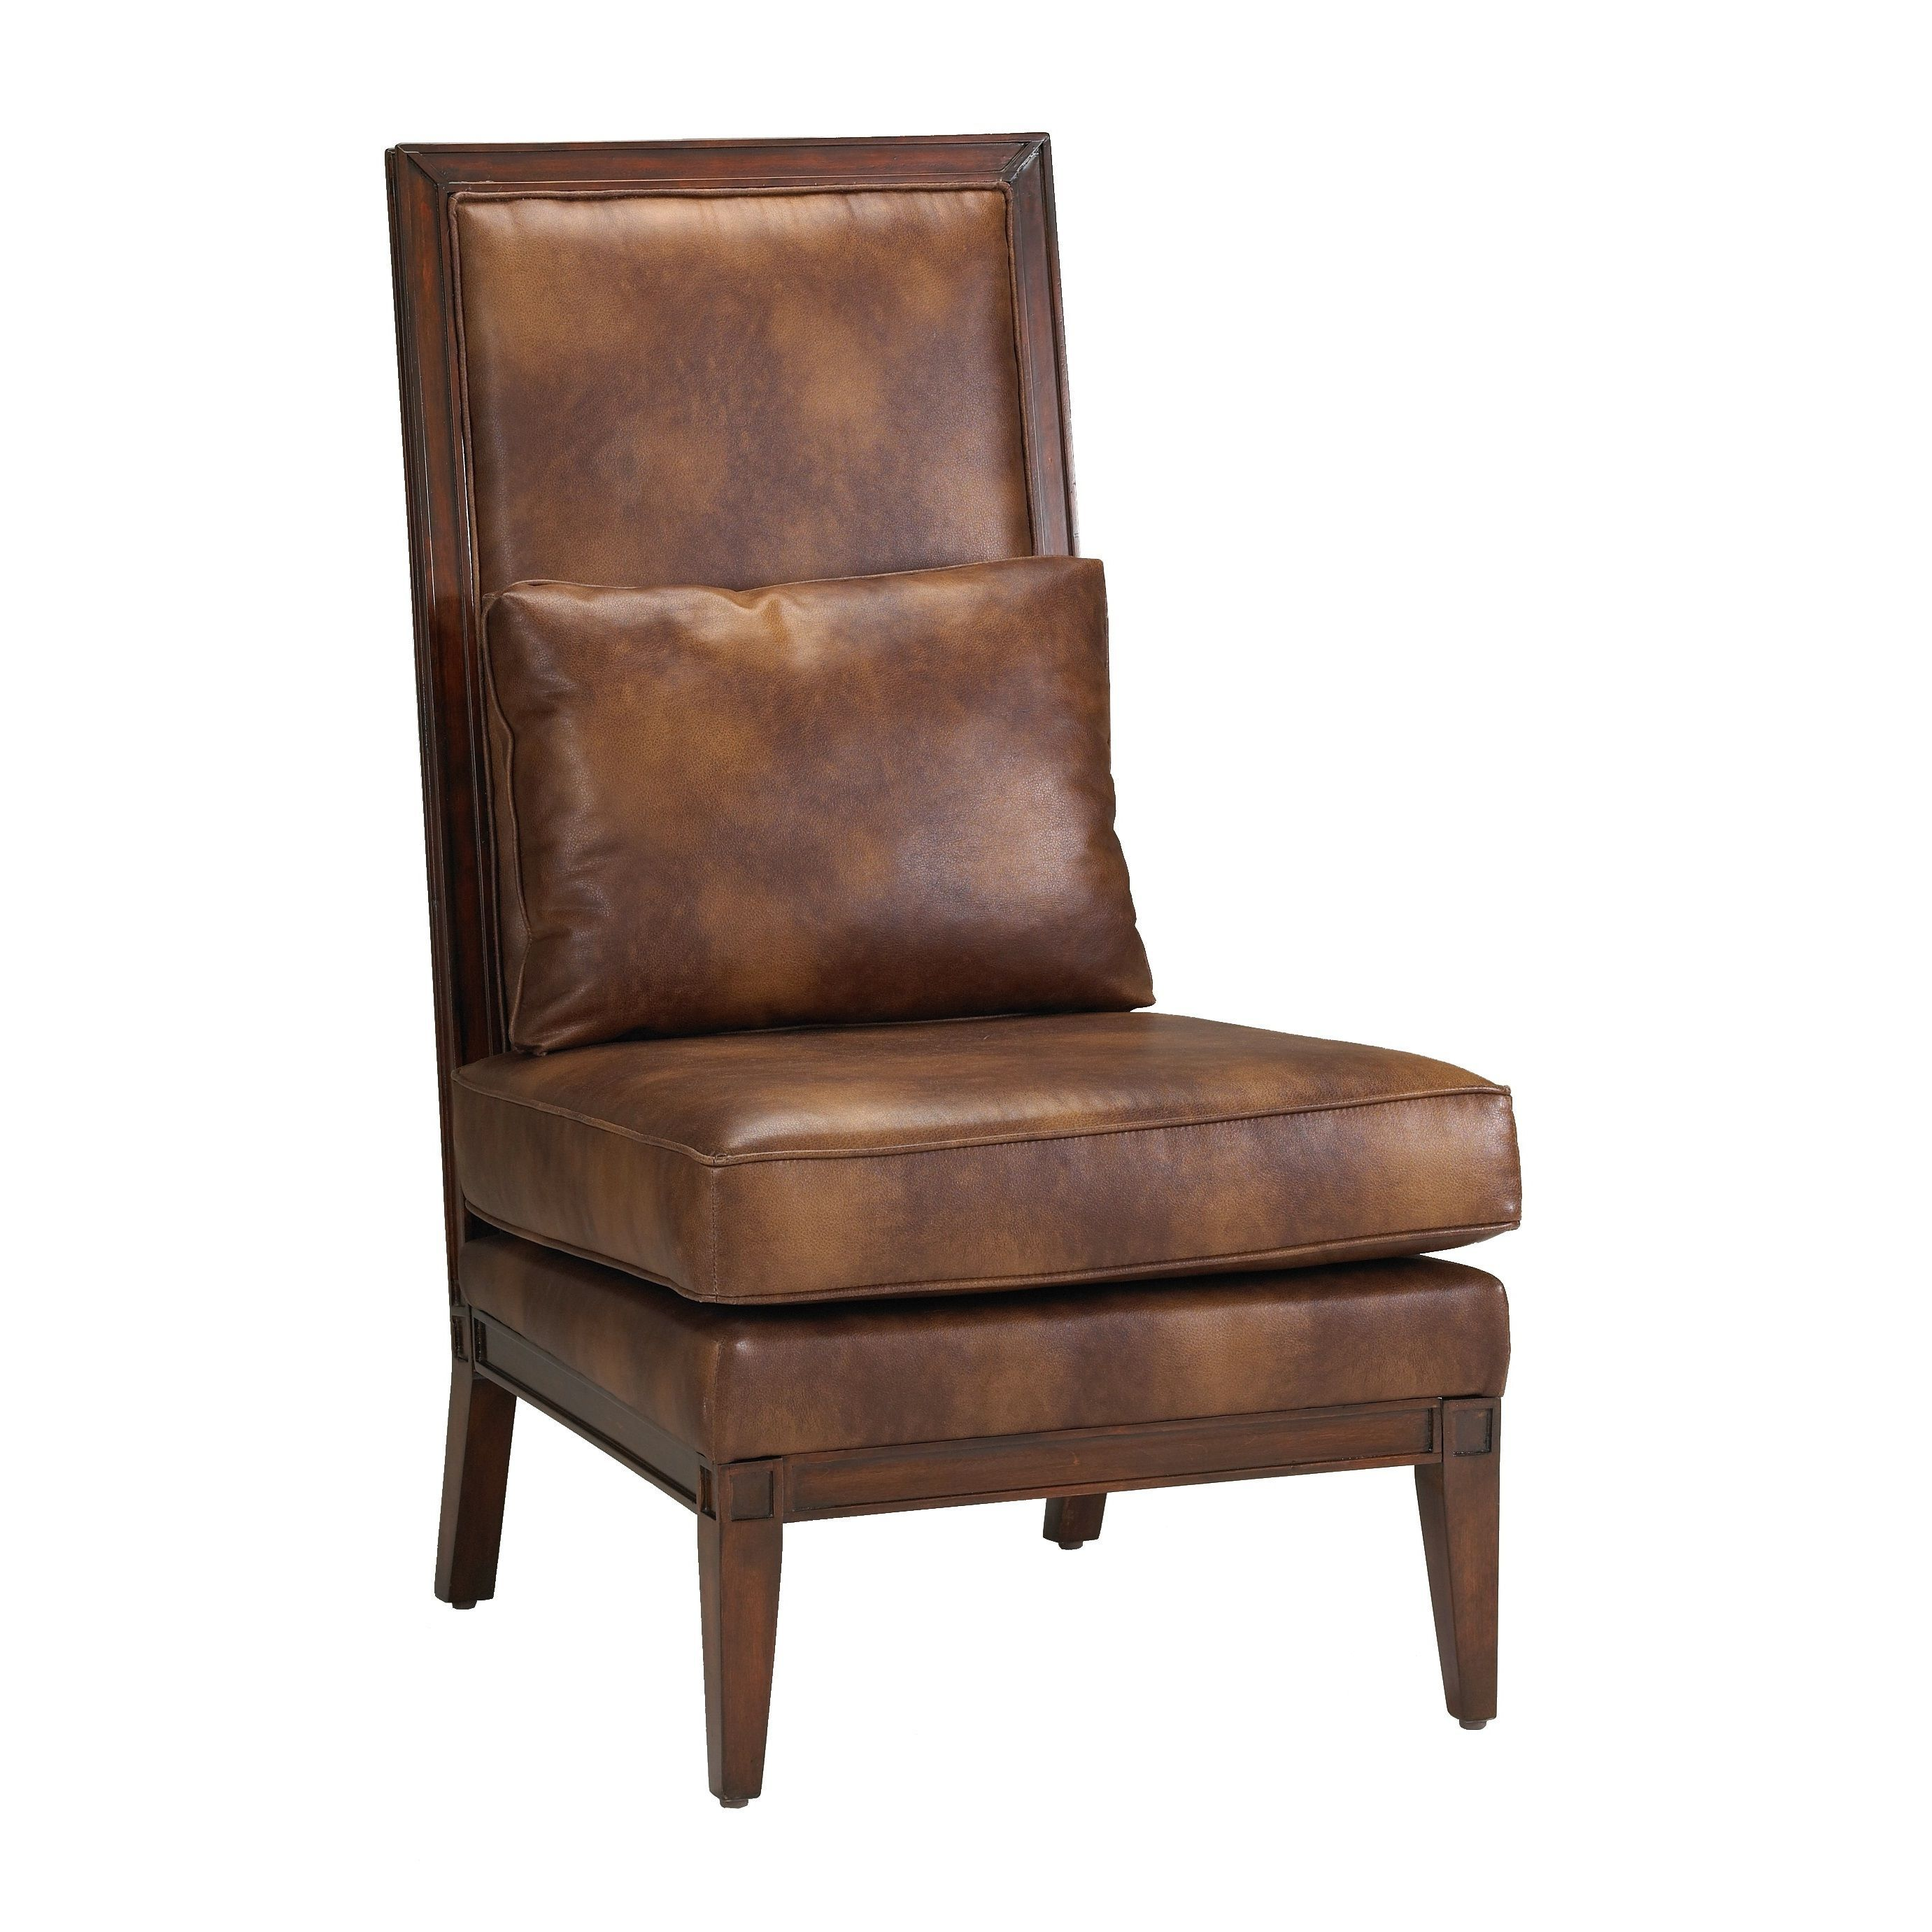 Fine Aden High Back Accent Chair By Greyson Living Aden Chair Ibusinesslaw Wood Chair Design Ideas Ibusinesslaworg